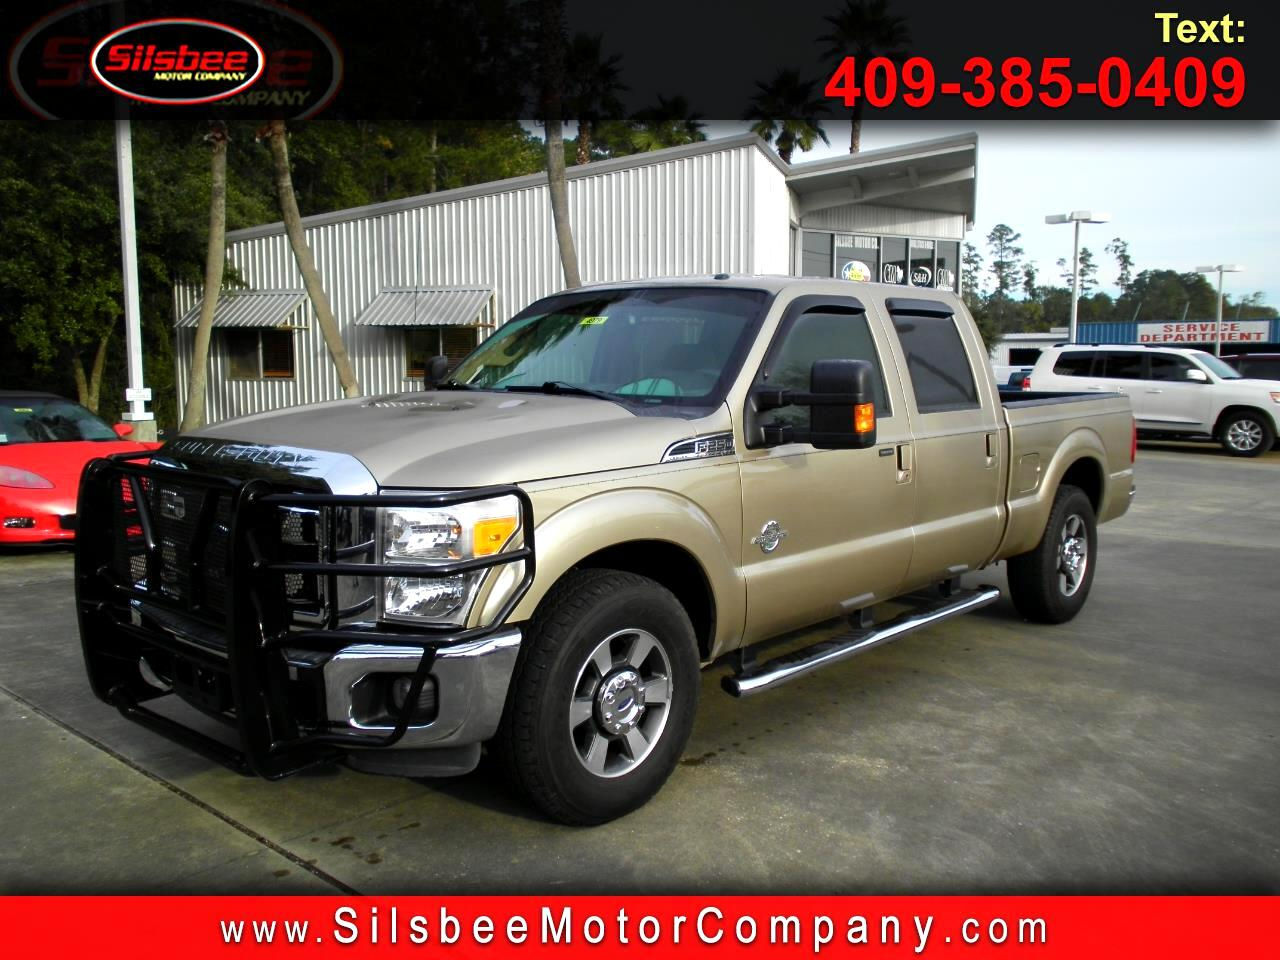 2012 Ford Super Duty F-250 SRW 2WD Crew Cab 156